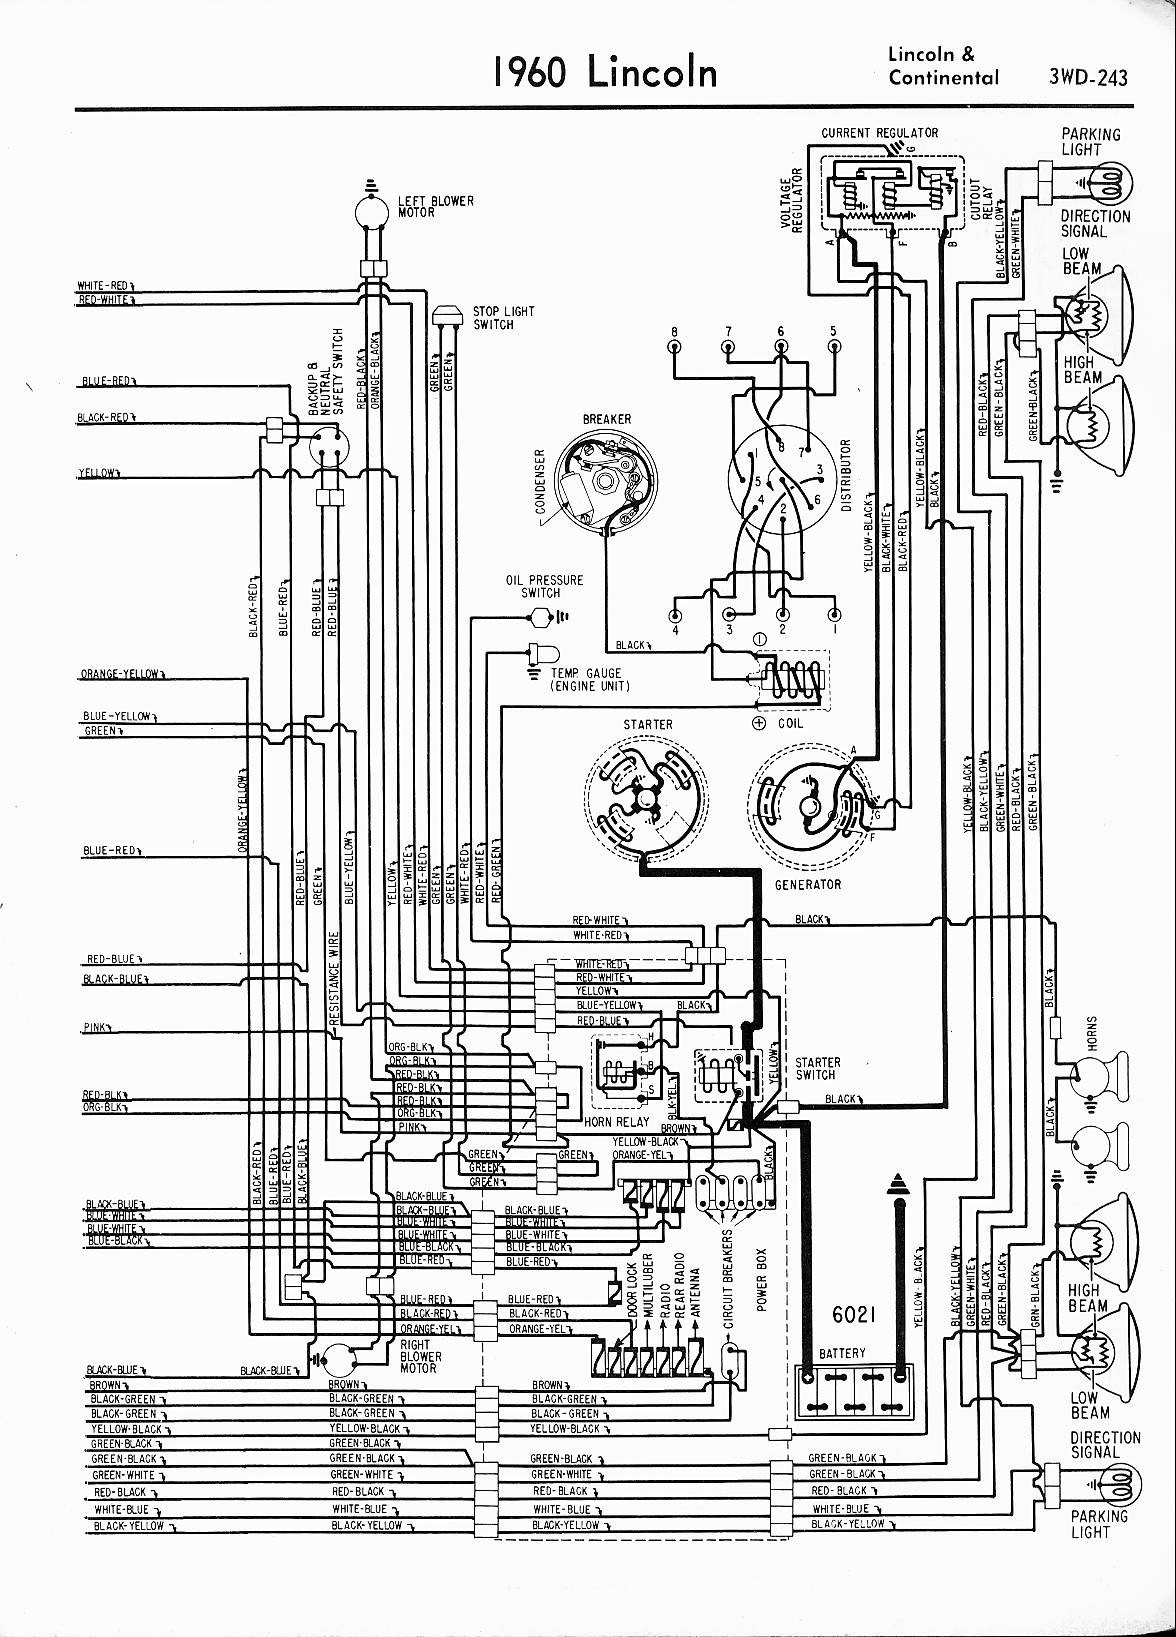 2003 Lincoln Navigator Engine Diagram 03 ford Expedition 4 ... on